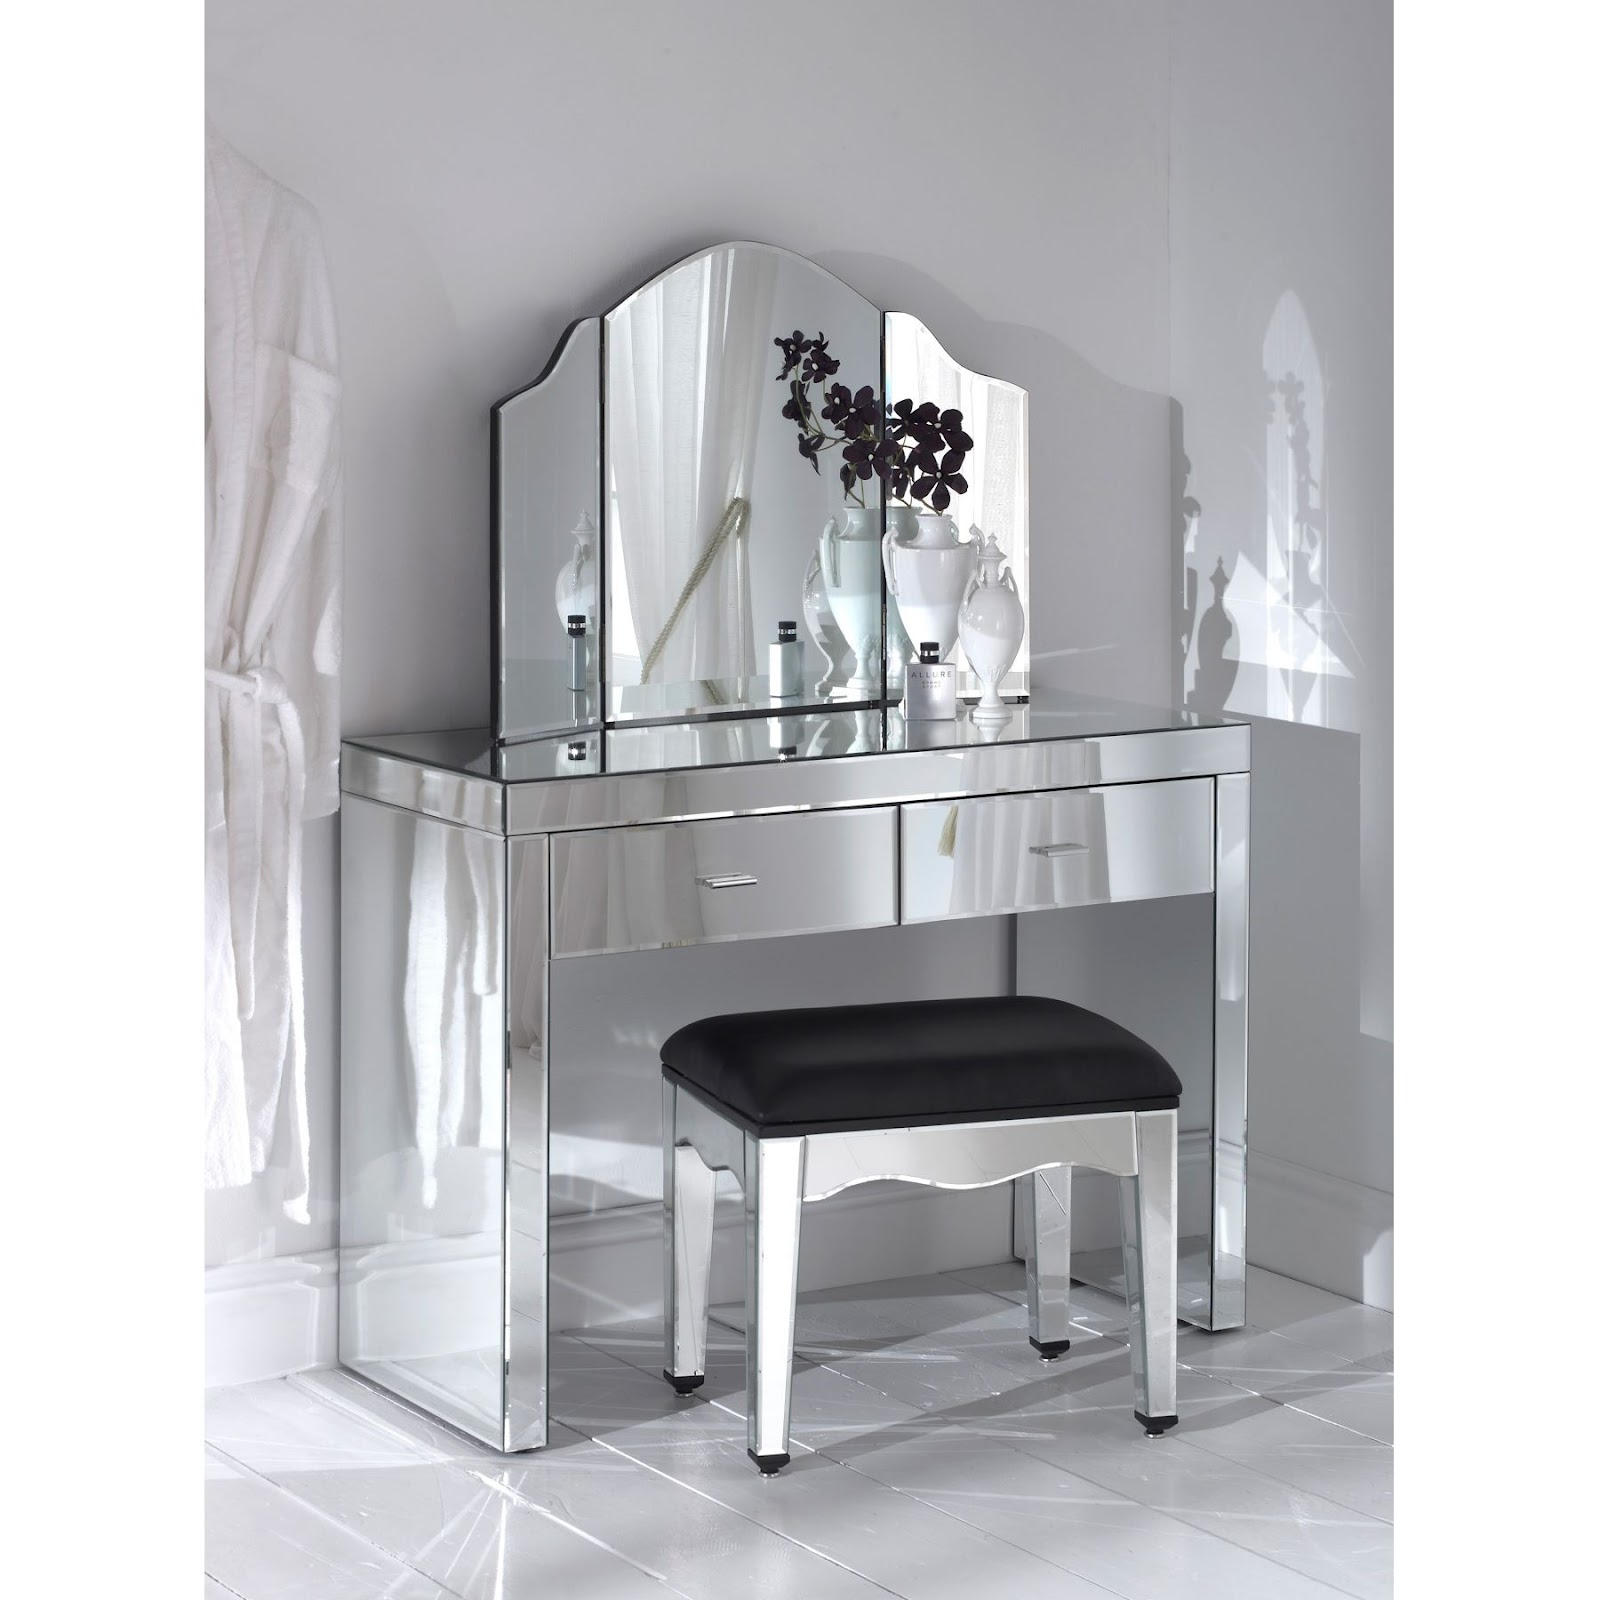 Dressing Table Designs For Master Bedroom Modern Dressing Table Furniture Designs An Interior Design